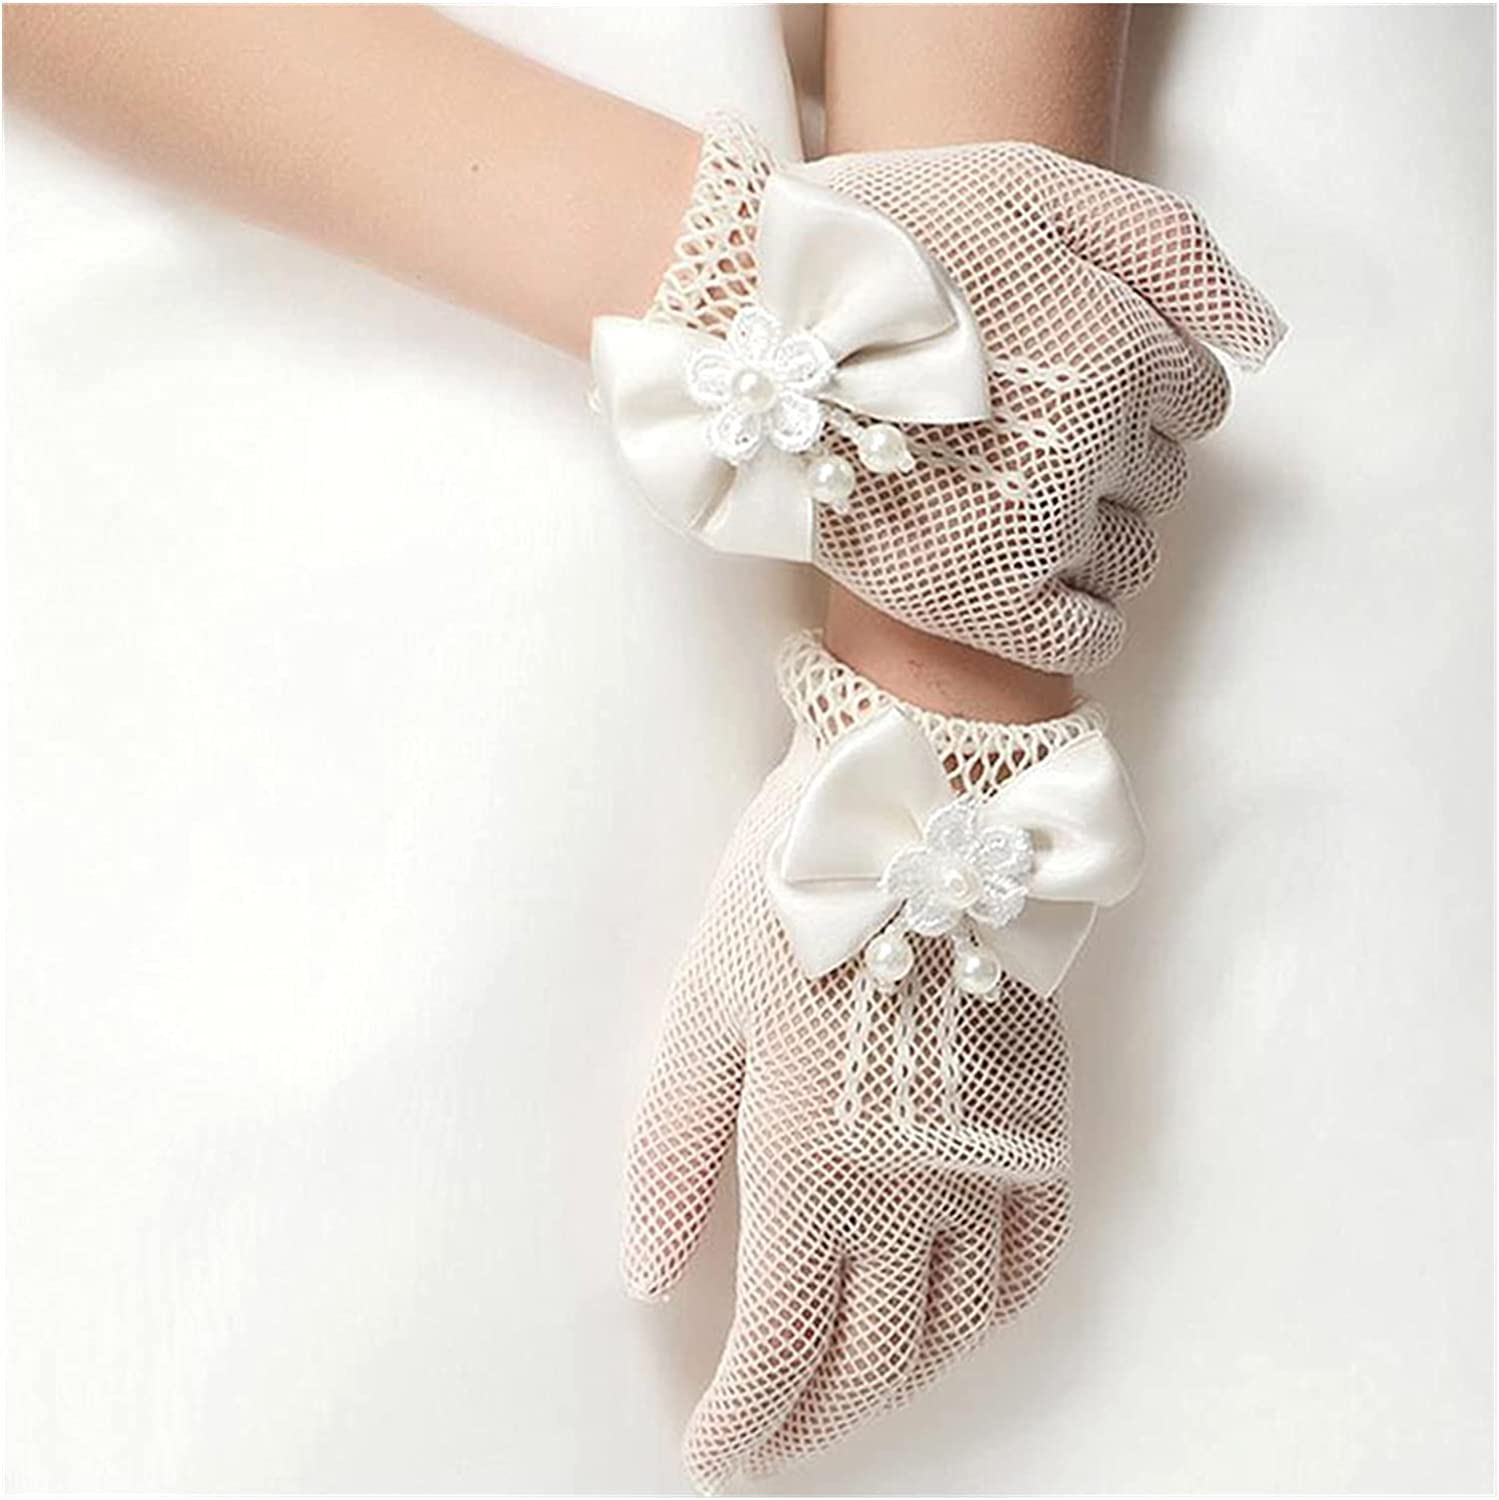 CHHNGPON Bridal Gloves Girls Mesh Bow Lace Pearl Decoration Gloves Party Supplies Children Birthday Ceremony Coronation Accessories Gift Mittens